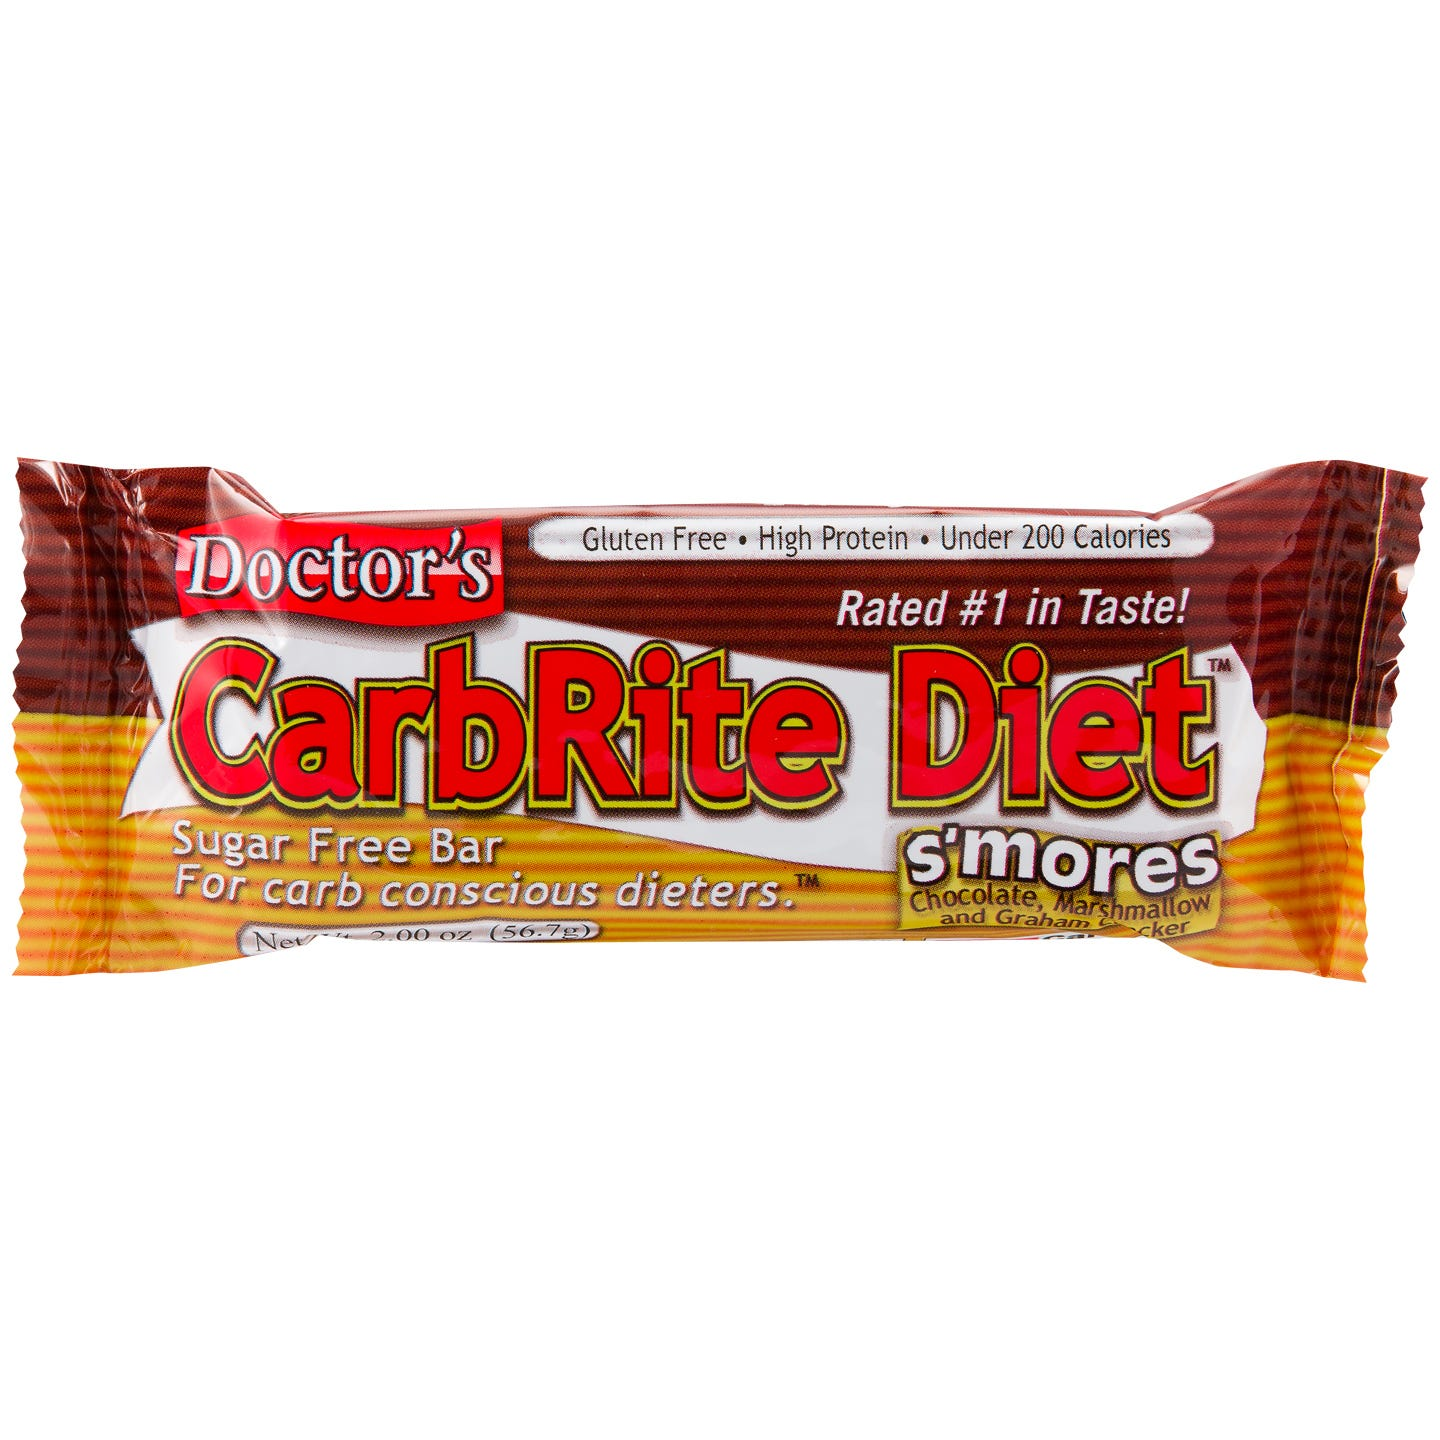 Doctor's CarbRite Diet Protein Bars - S'mores